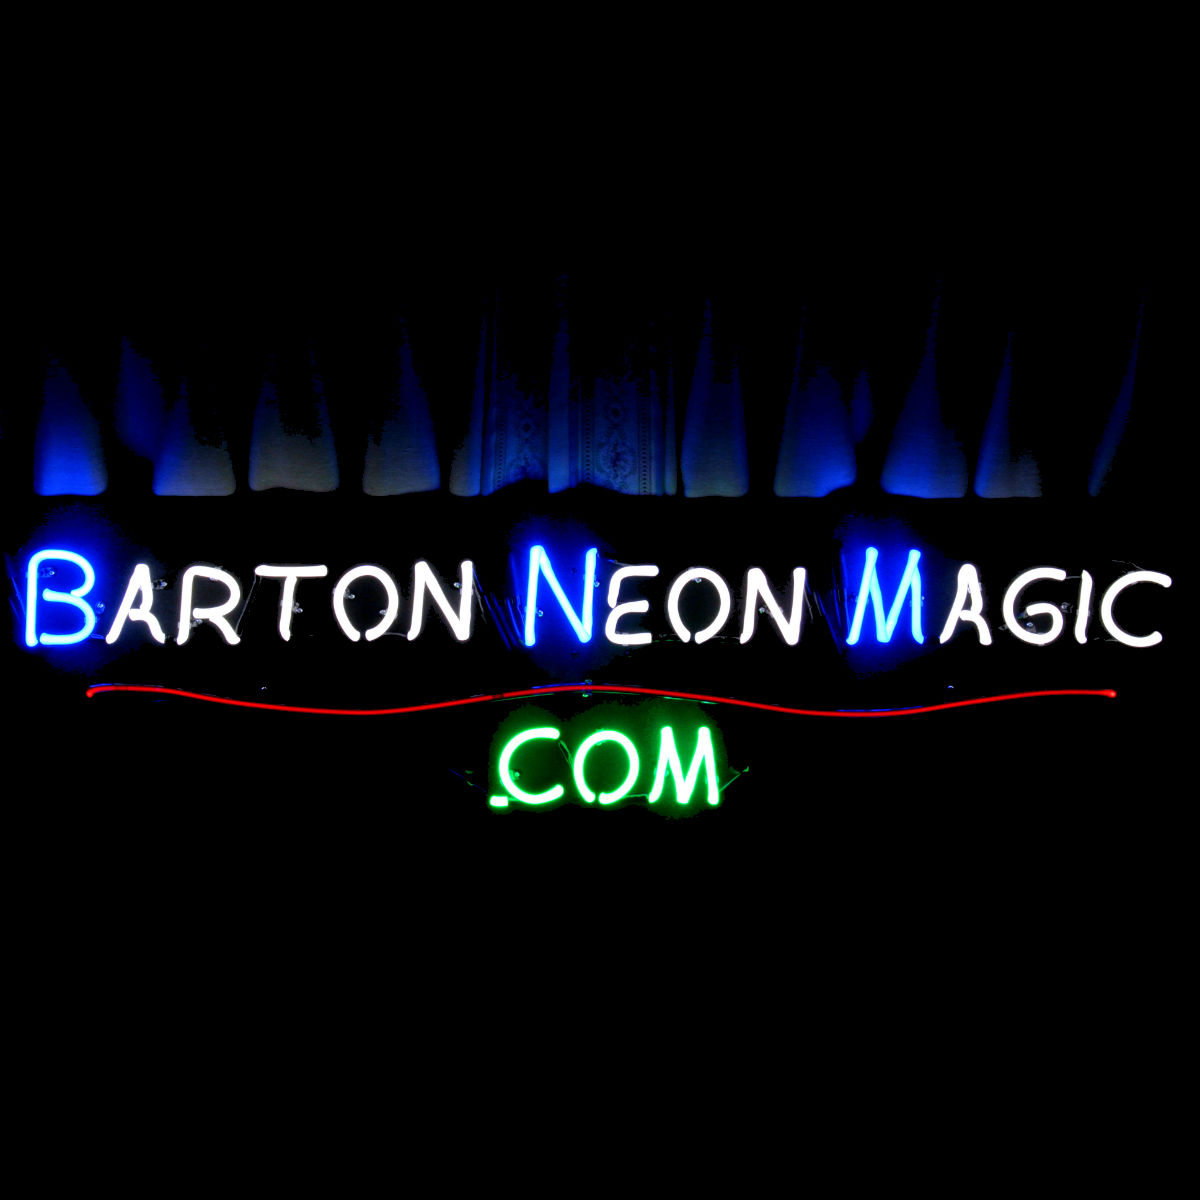 Custom Designer Neon Lighting by John Barton - Internationally Famous USA Neon Glass Artist - BartonNeonMagic.com